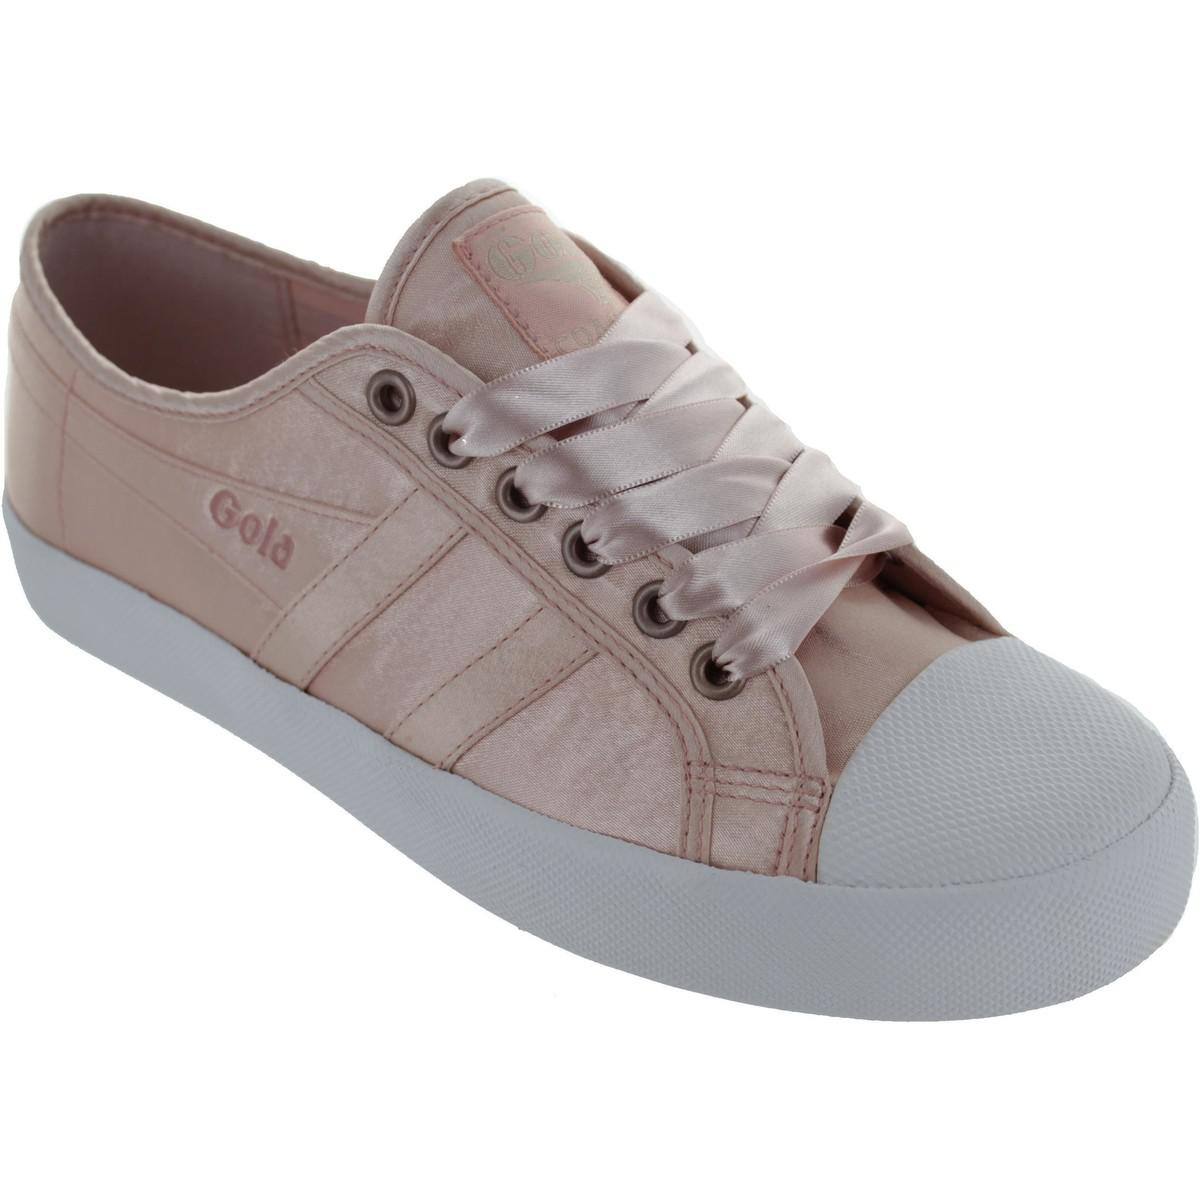 online store 51c1c 69565 gola-pink-Coaster-Satin-Womens-Shoes-trainers-In-Pink.jpeg